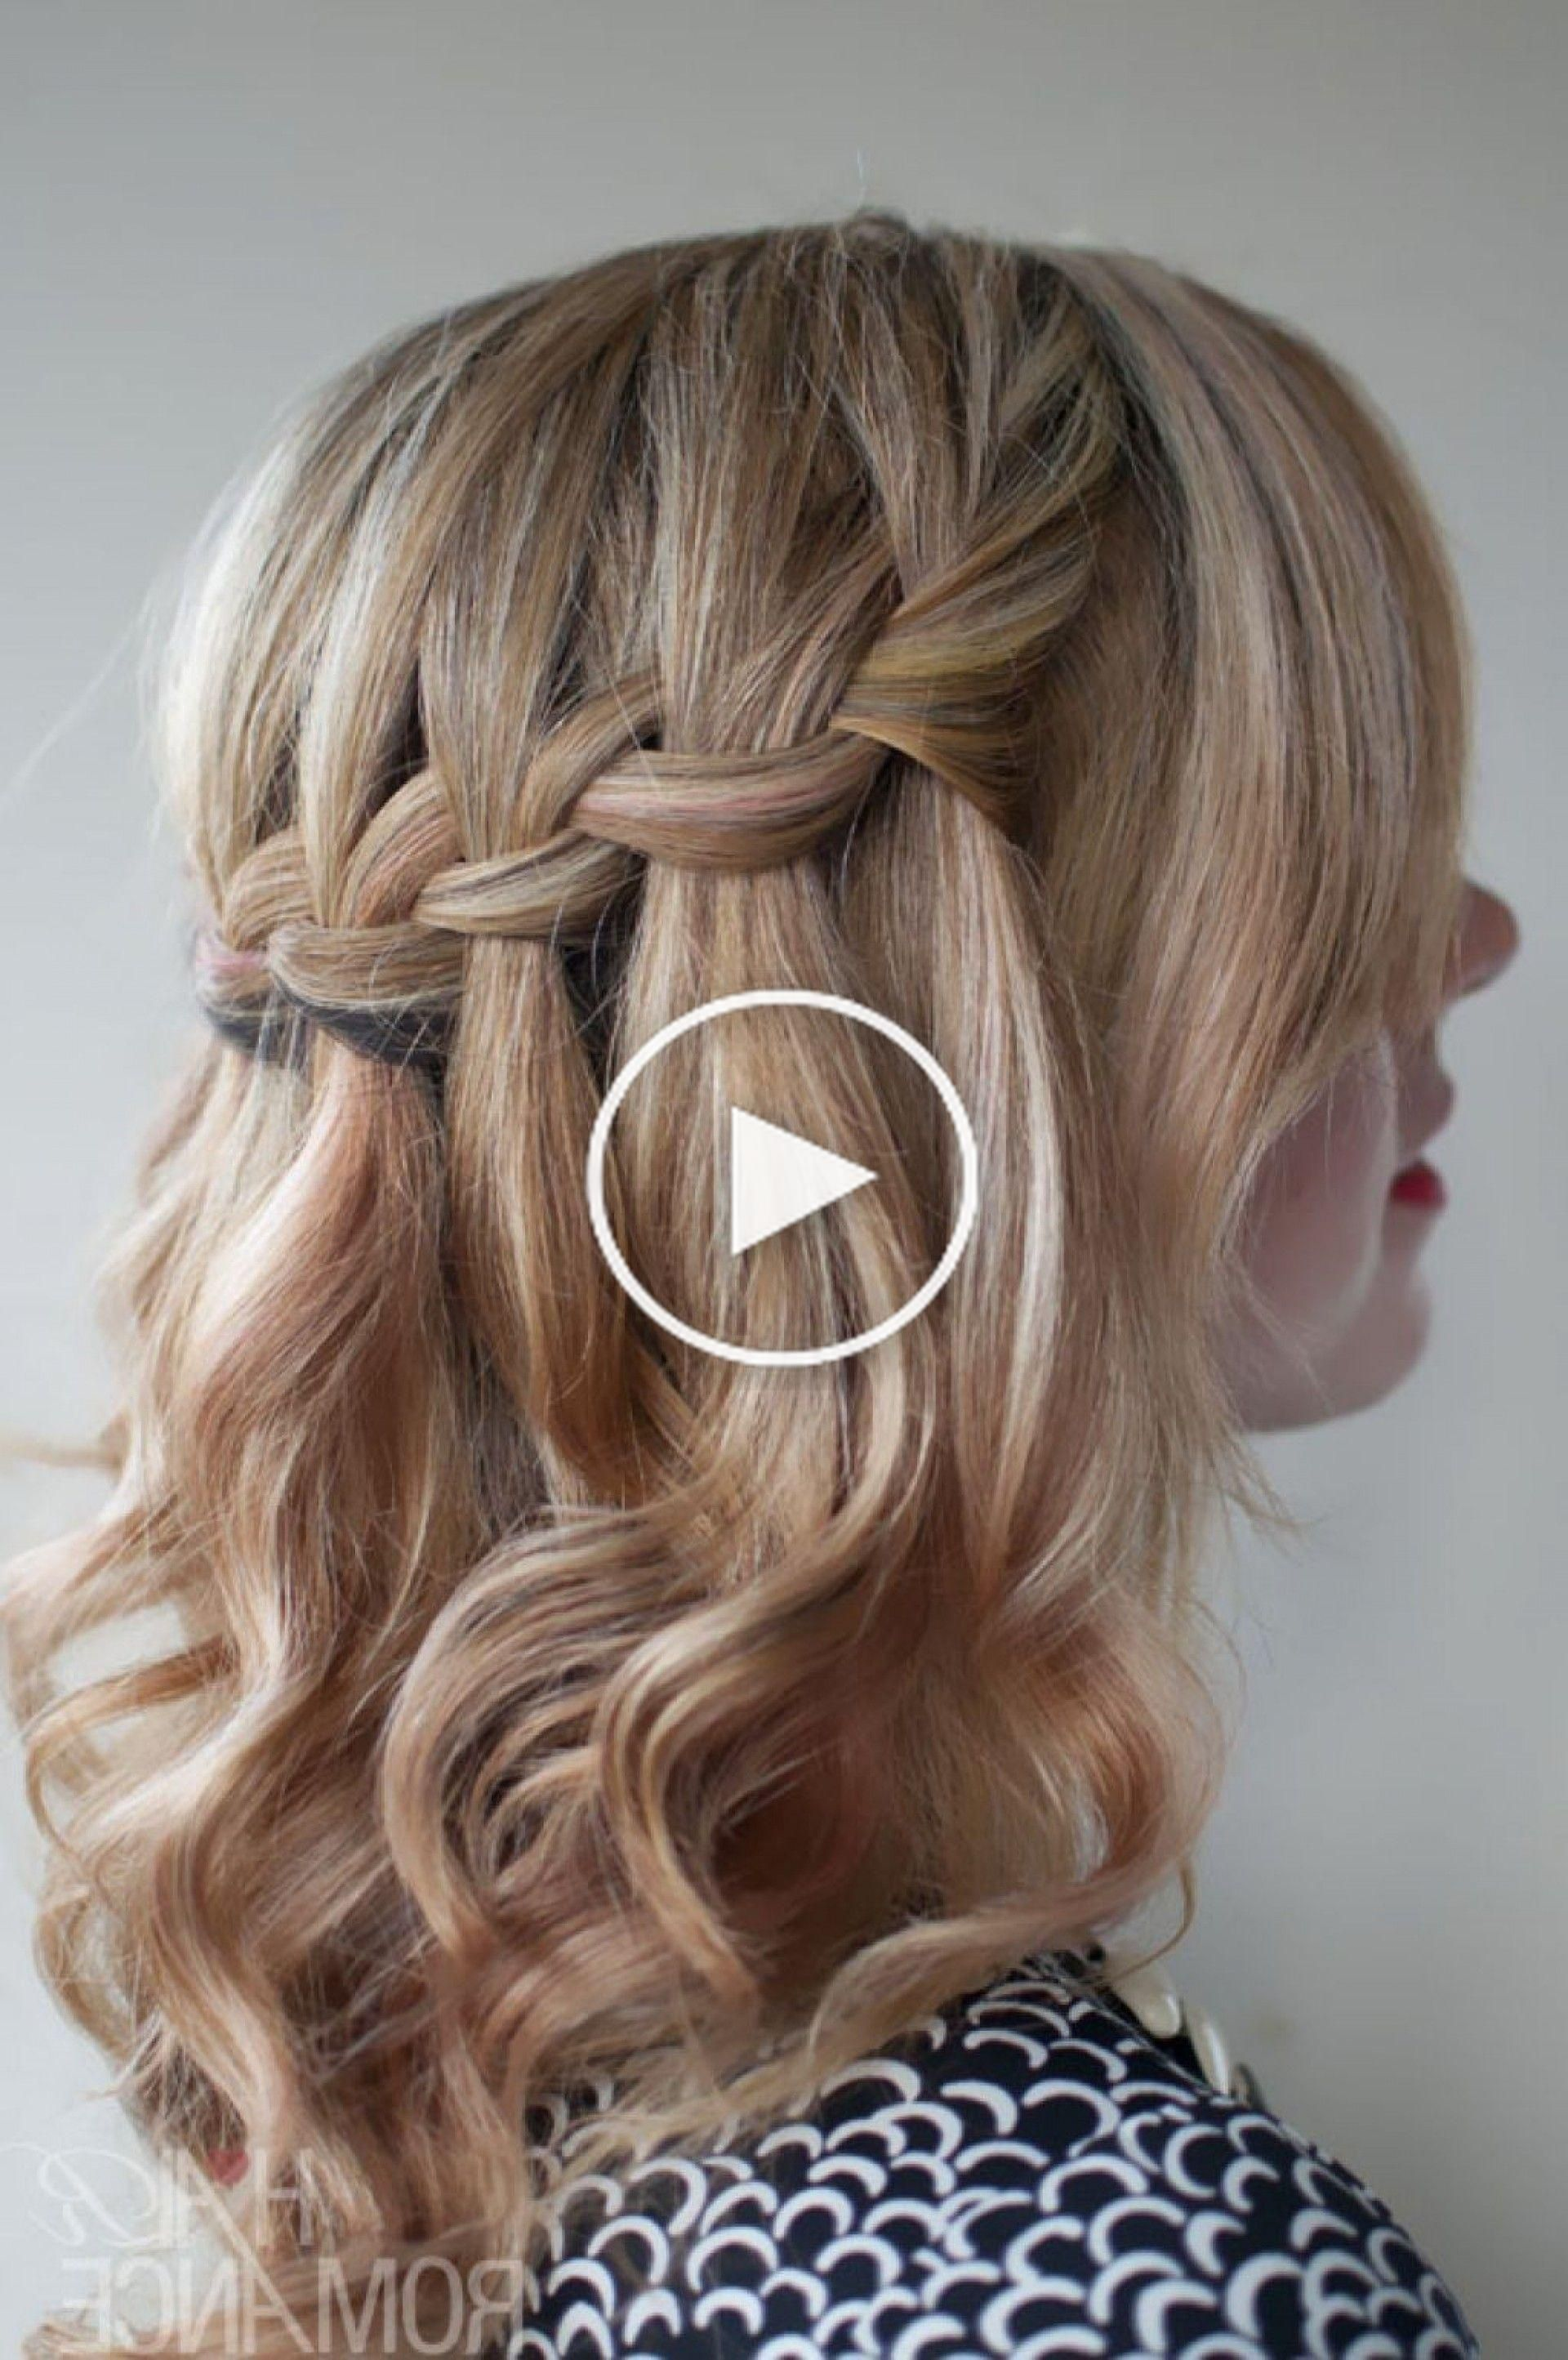 039 Graduation Hairstyles For Short Hair Unusual Grad Natural In 2020 Hair Styles Graduation Hairstyles Curly Hair Styles Naturally